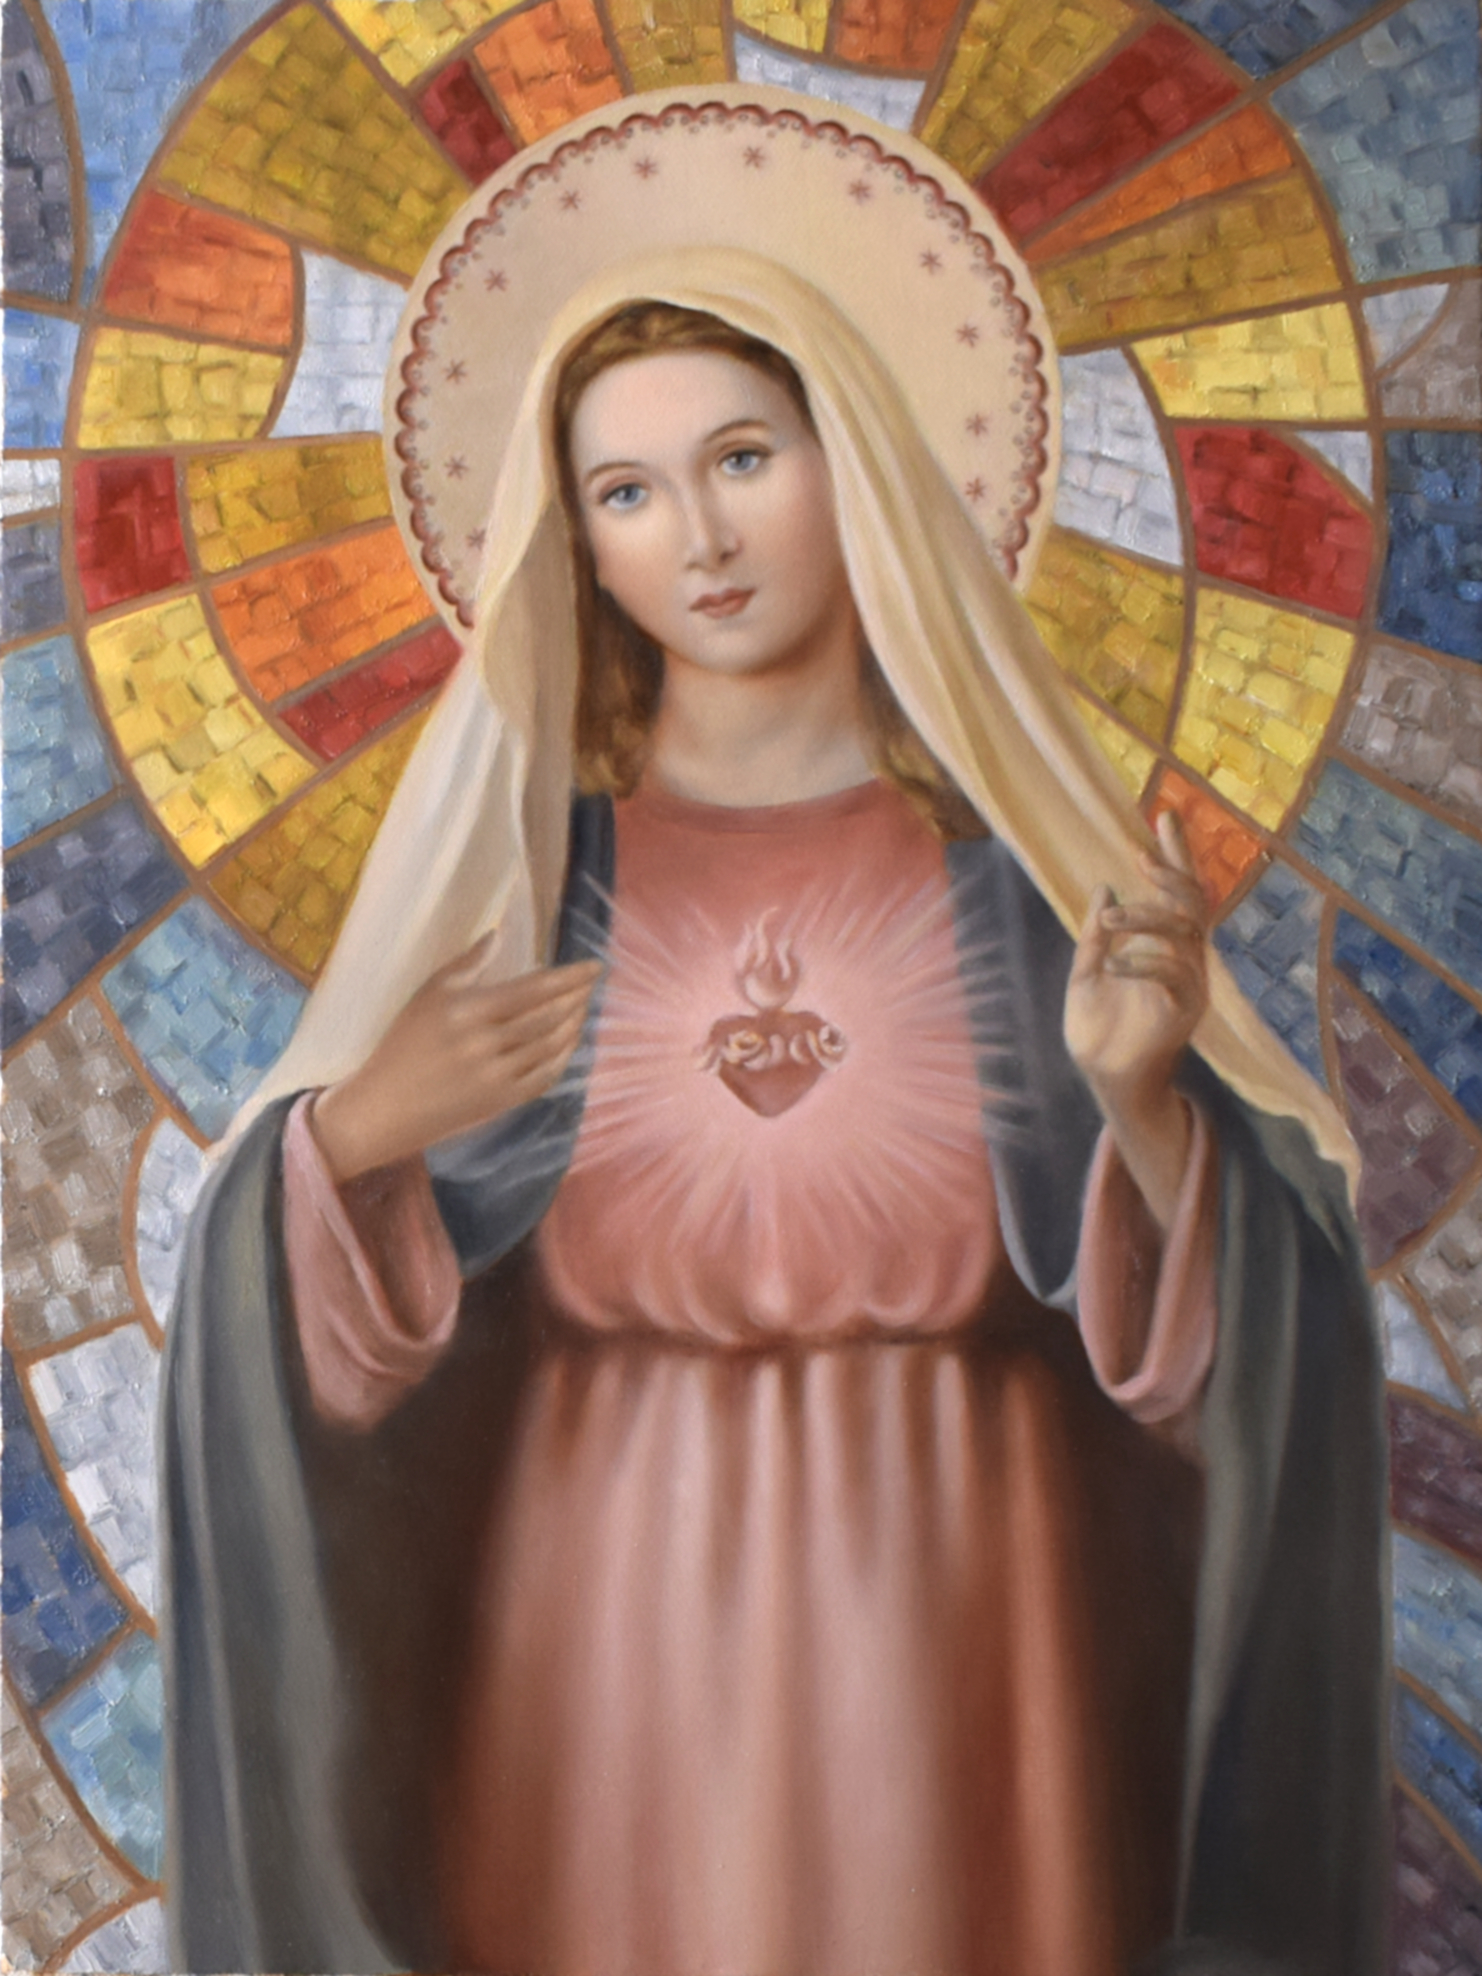 Version of a religious icon by unknown author, Imaculado Coração de Maria II, oil on canvas, 40 x 30 cm, 2020